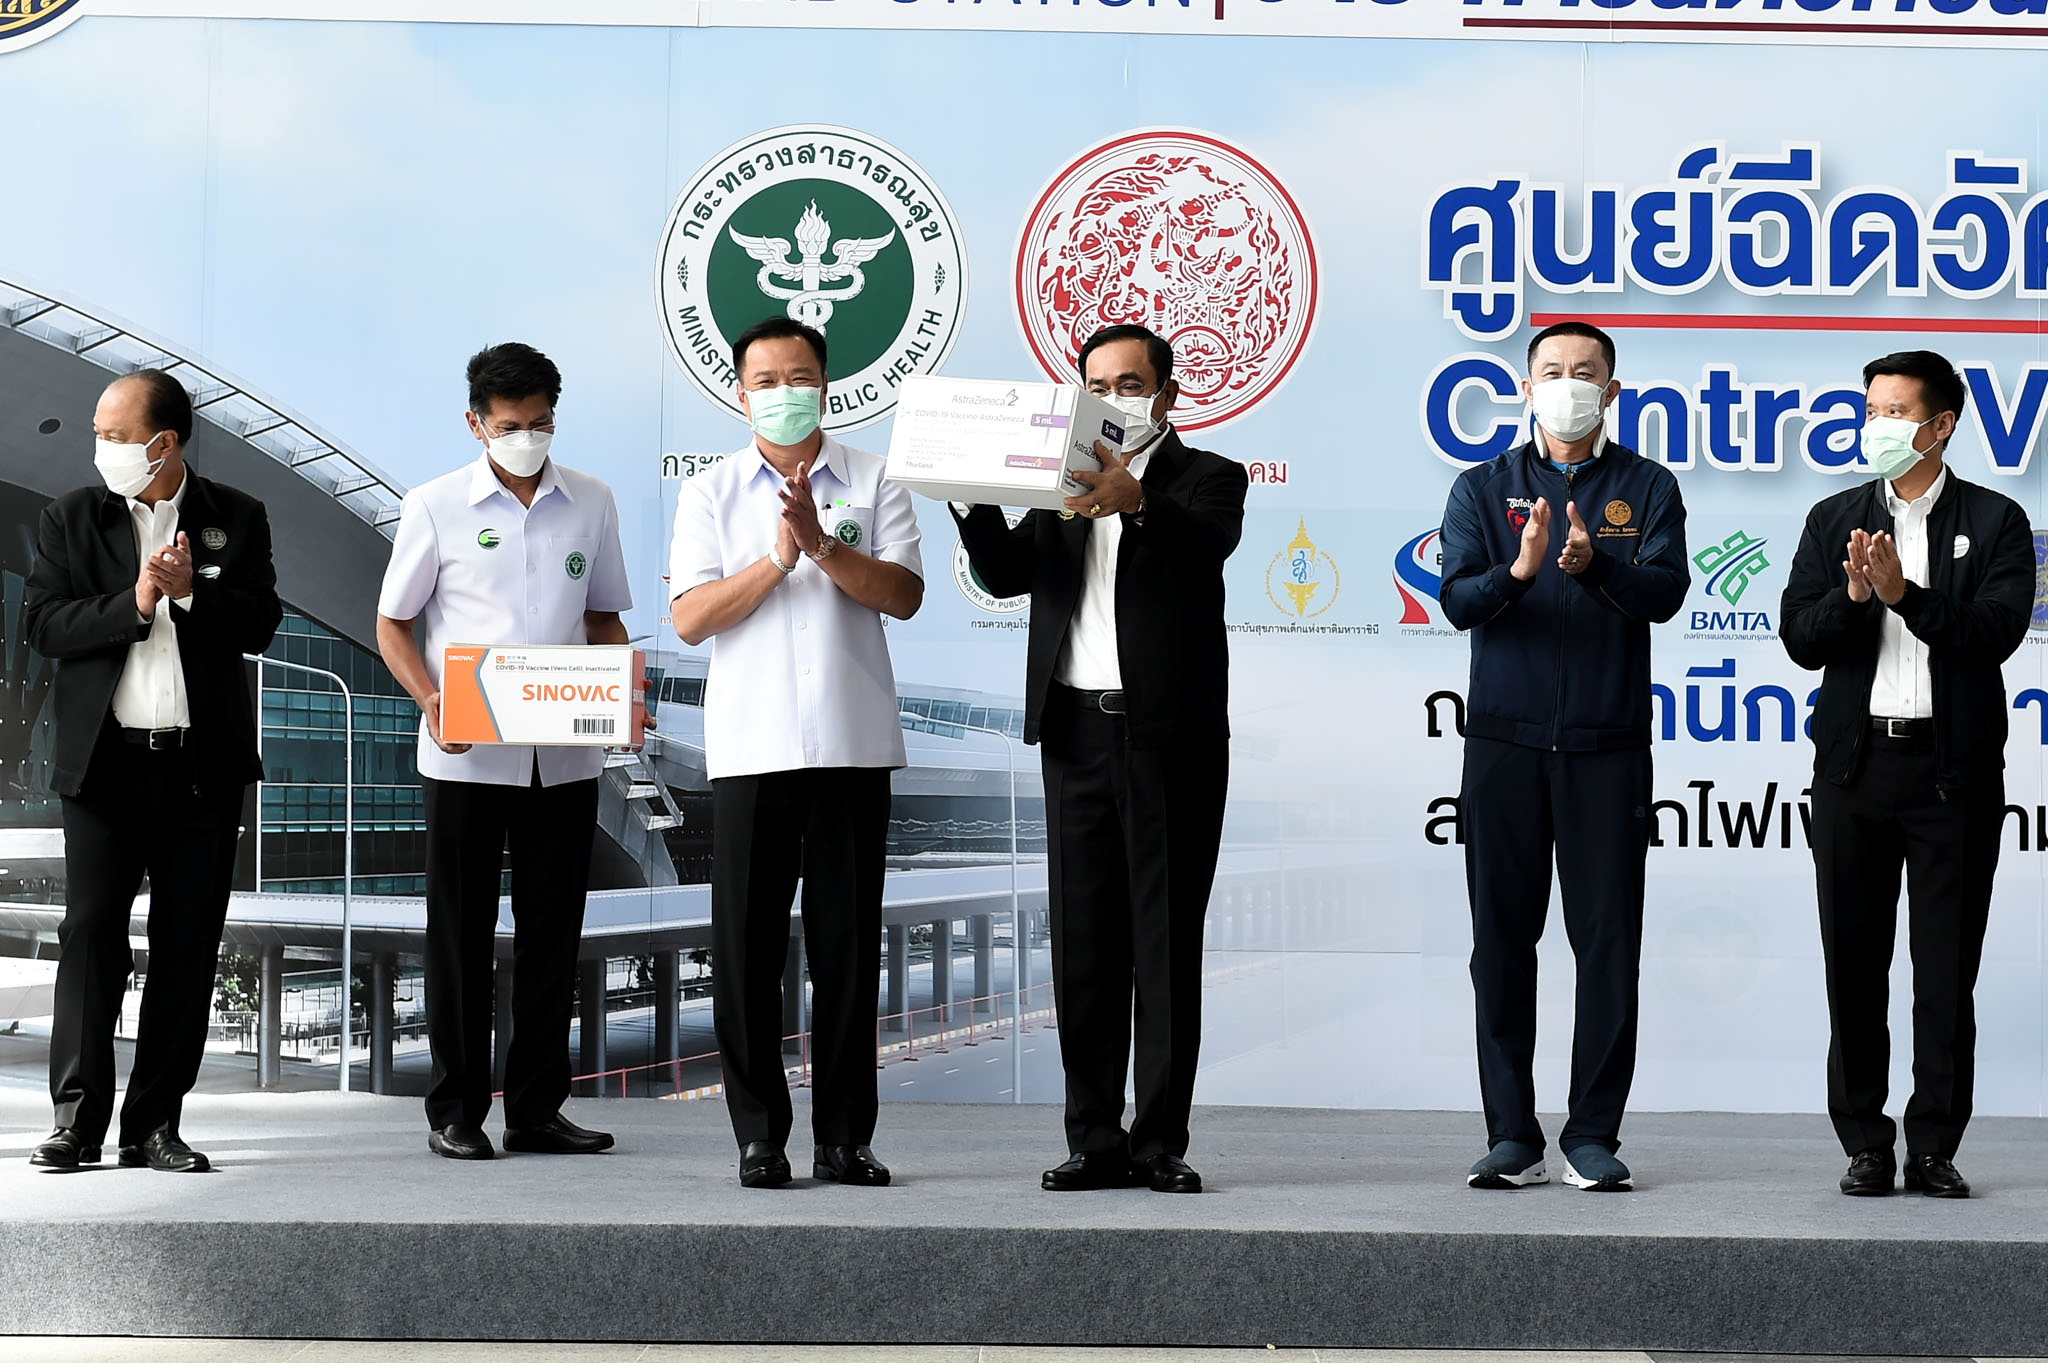 Thailand's Prime Minister Prayuth Chan-ocha holds a box containing AstraZeneca's COVID-19 vaccines as the country starts a mass inoculation campaign against the coronavirus disease (COVID-19), in Bangkok, Thailand, June 7, 2021. Thailand Government House/Handout via REUTERS /File Photo